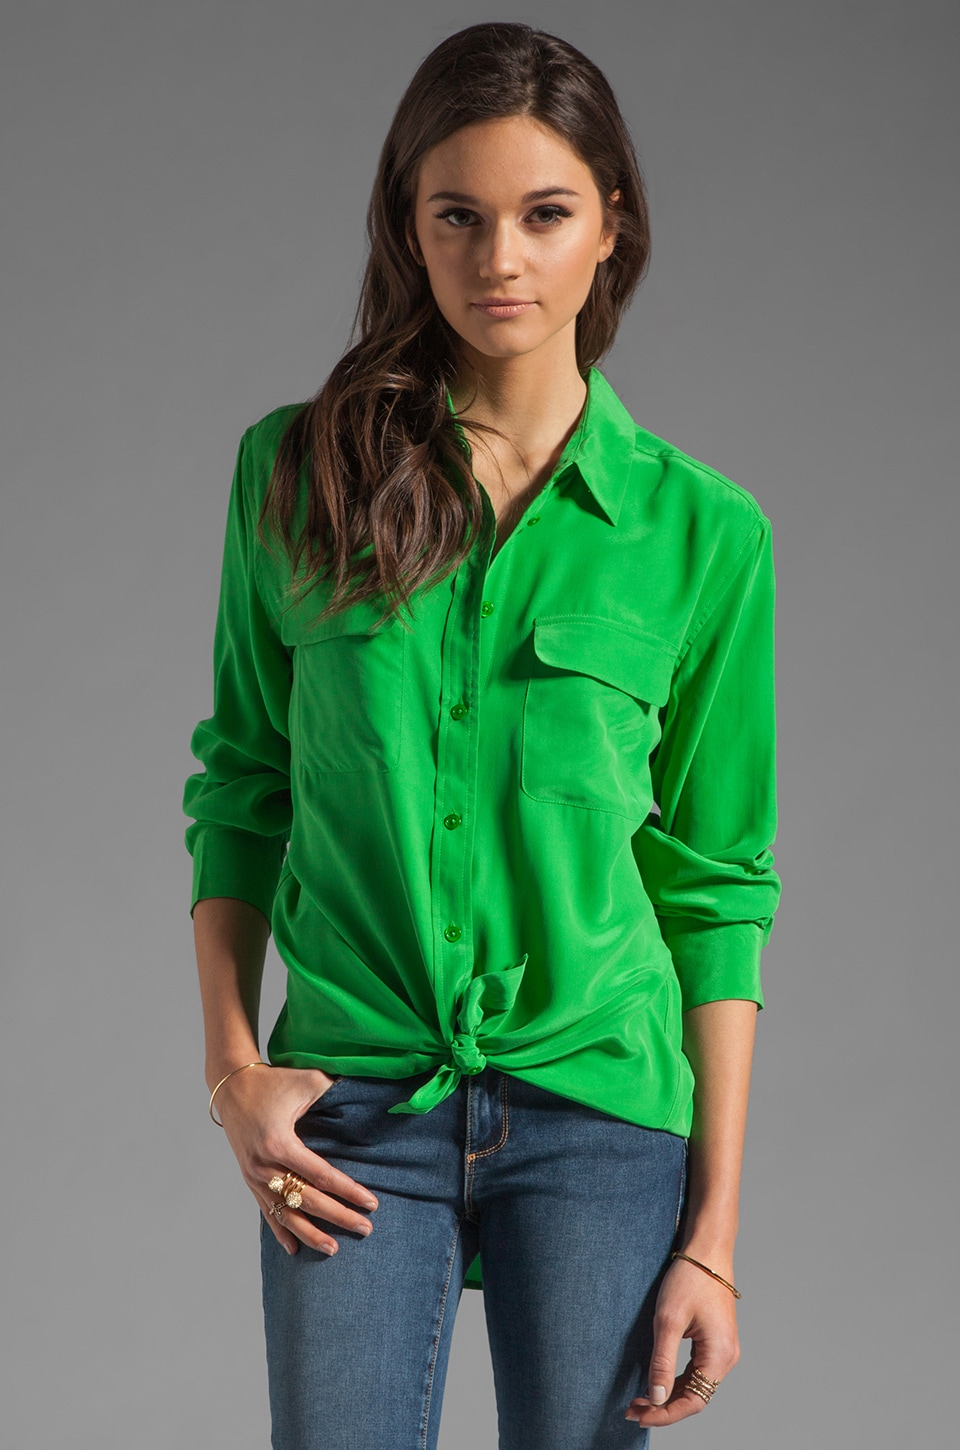 Equipment Signature Blouse in Fern Green